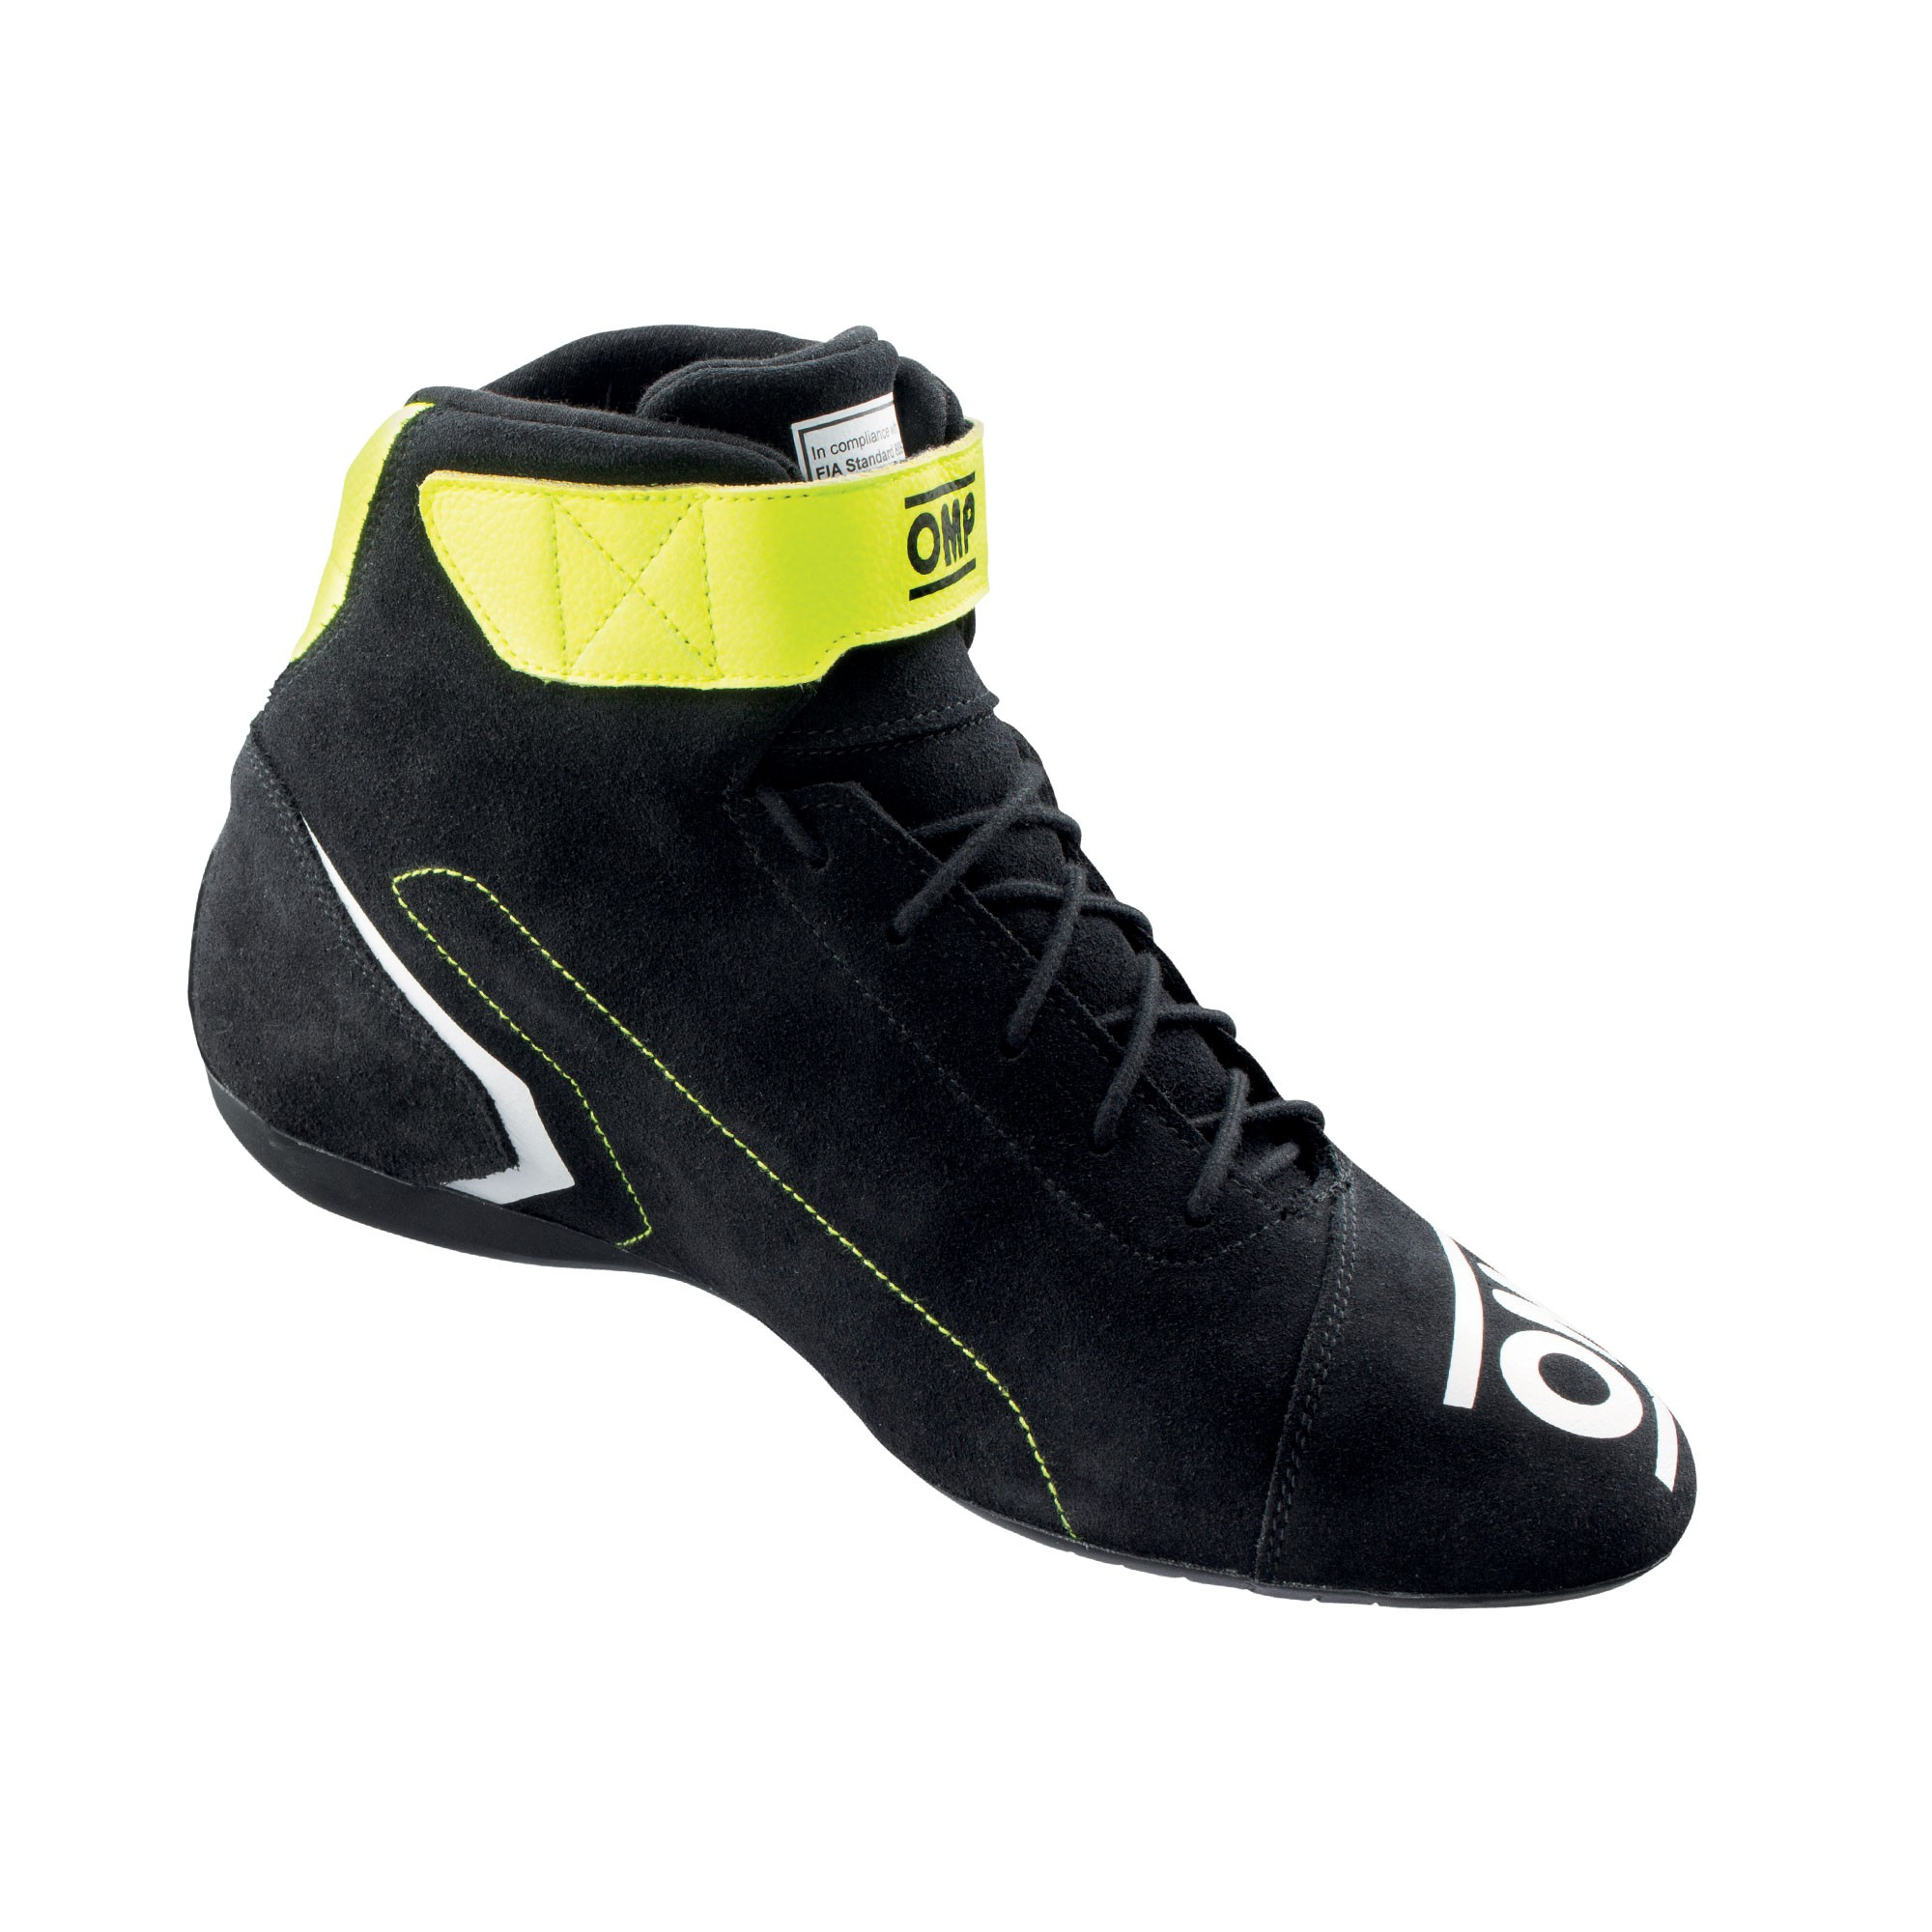 FIRST SHOES my2021 ANTHRACITE/FLUO YELLOW TG. 37 FIA 8856-2018